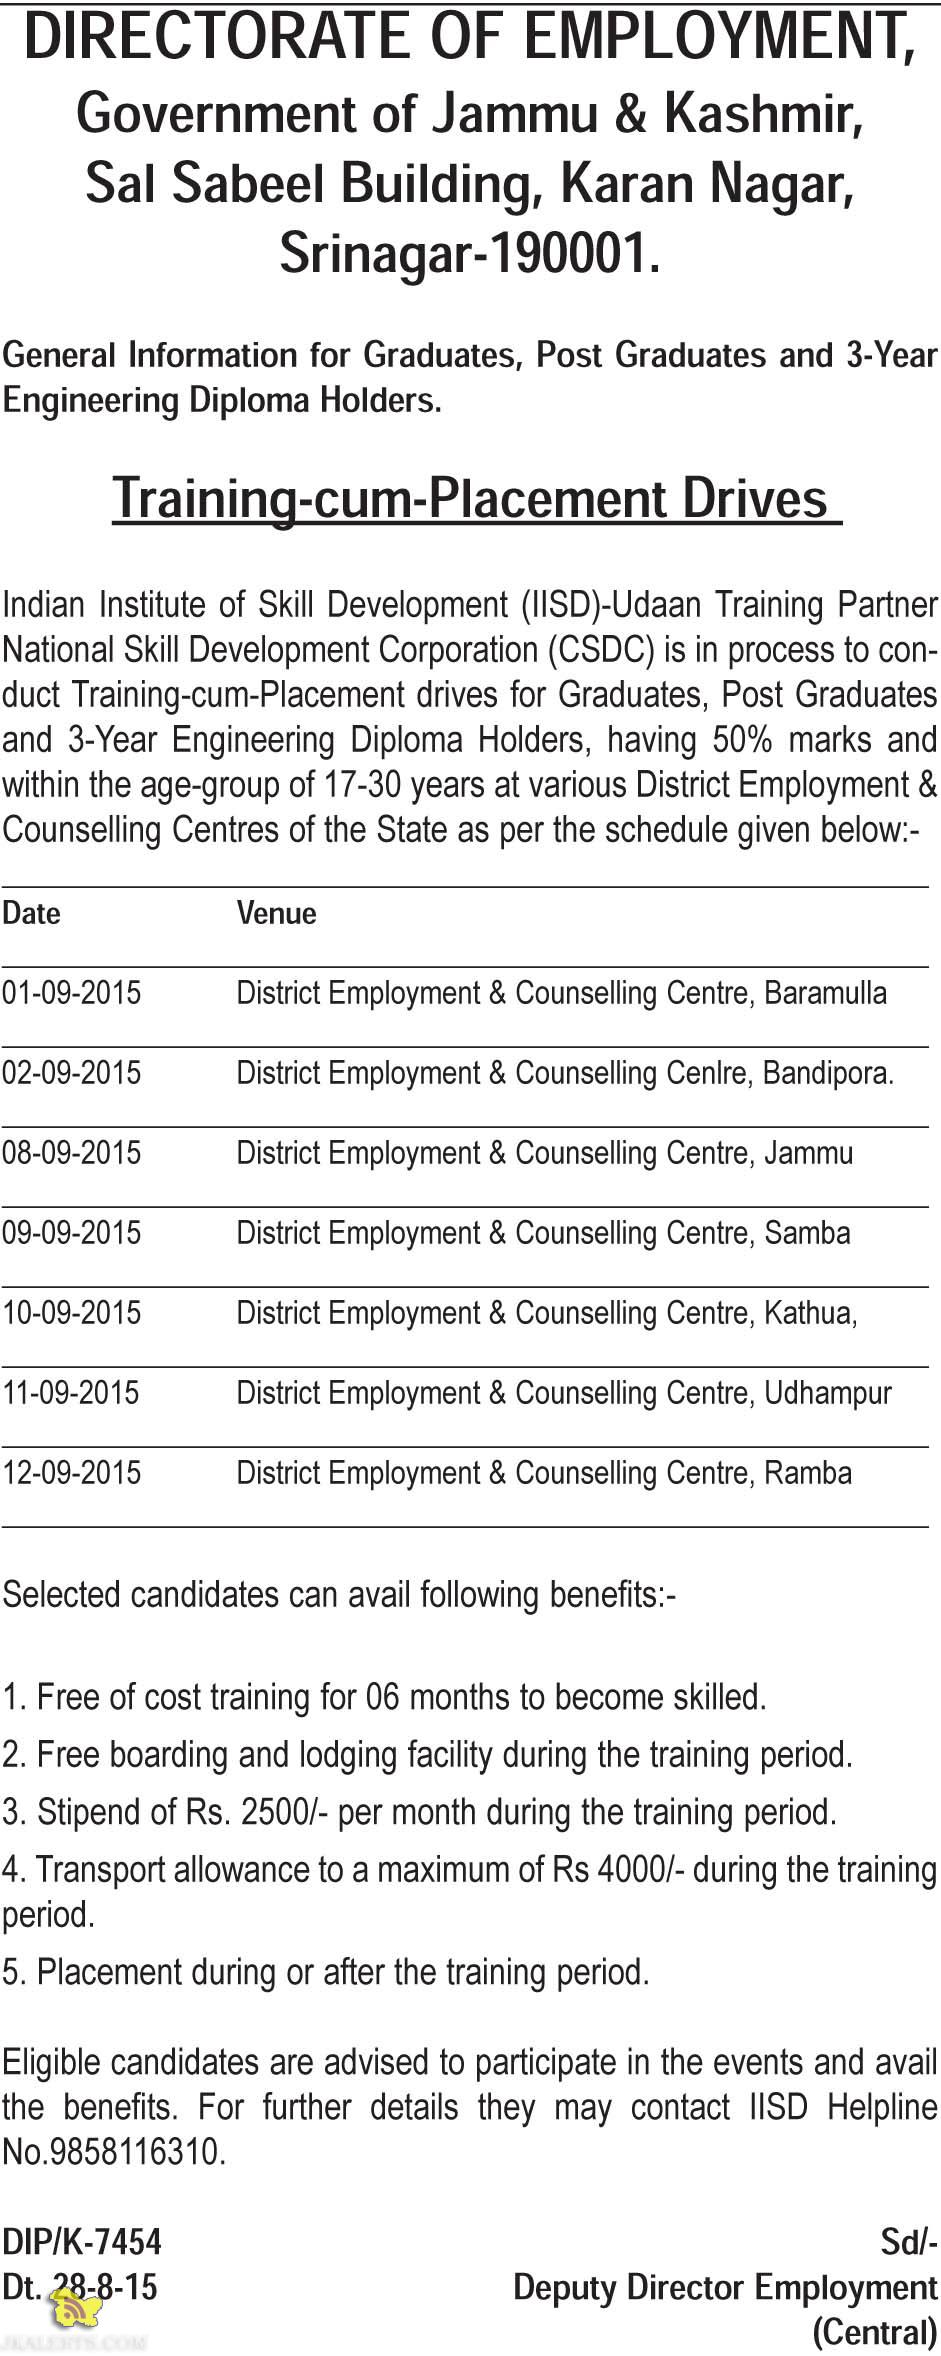 Training cum Placement Drive for Graduates, Post Graduates and 3-Year Engineering Diploma holder